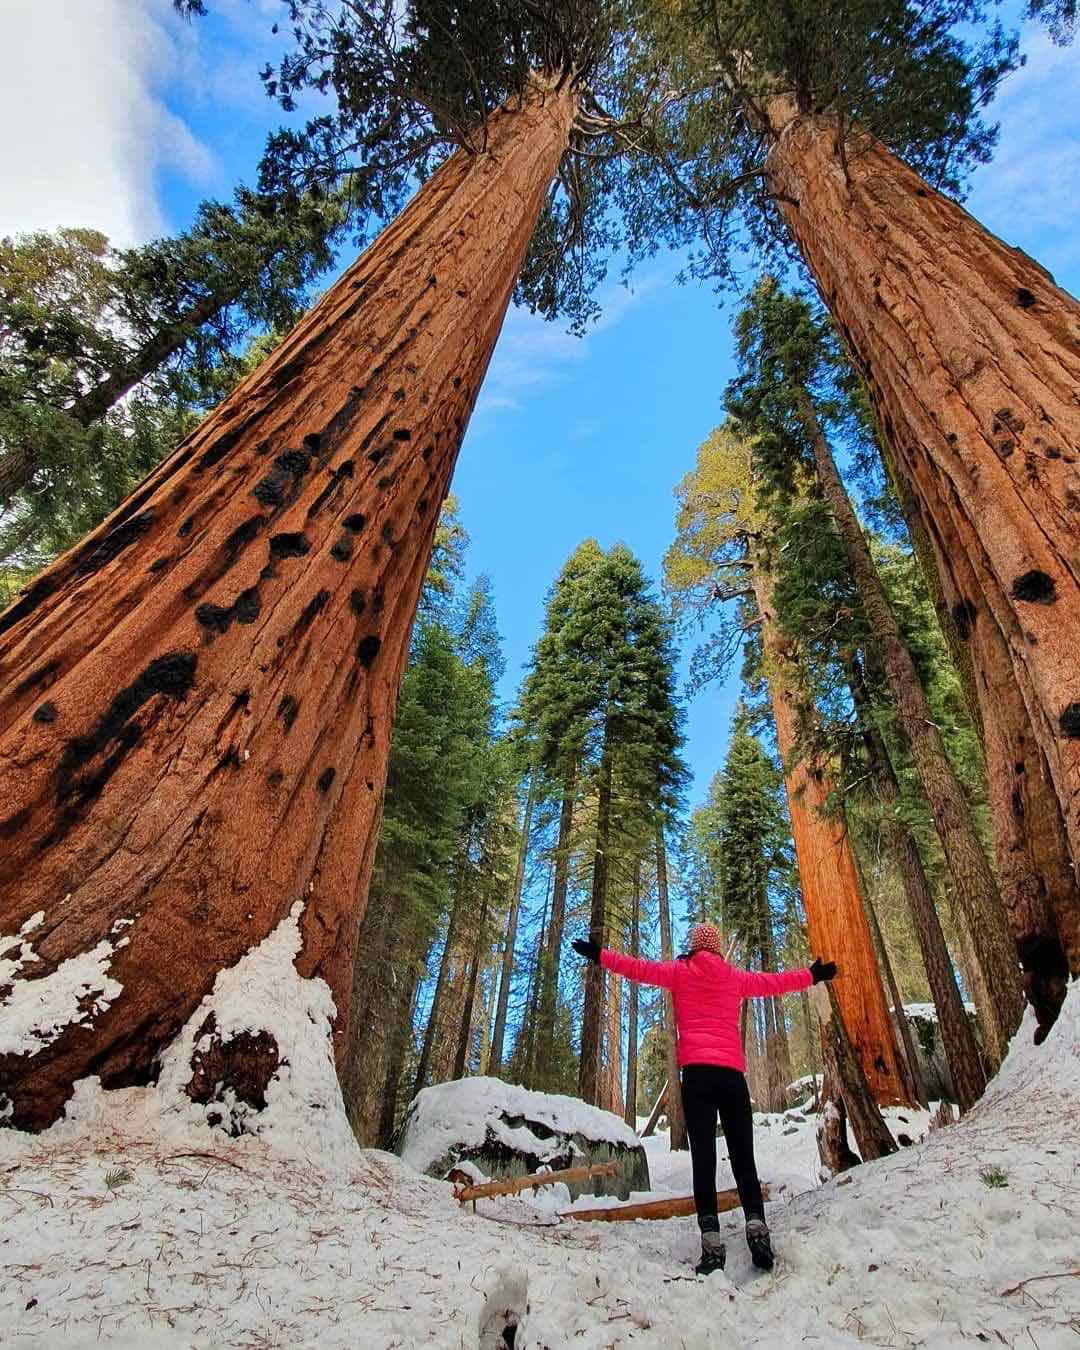 Cruise-America-Best-Time-to-Visit-Sequoia-National-Park-RV-Camping-insta-pelomundo-(1).jpg